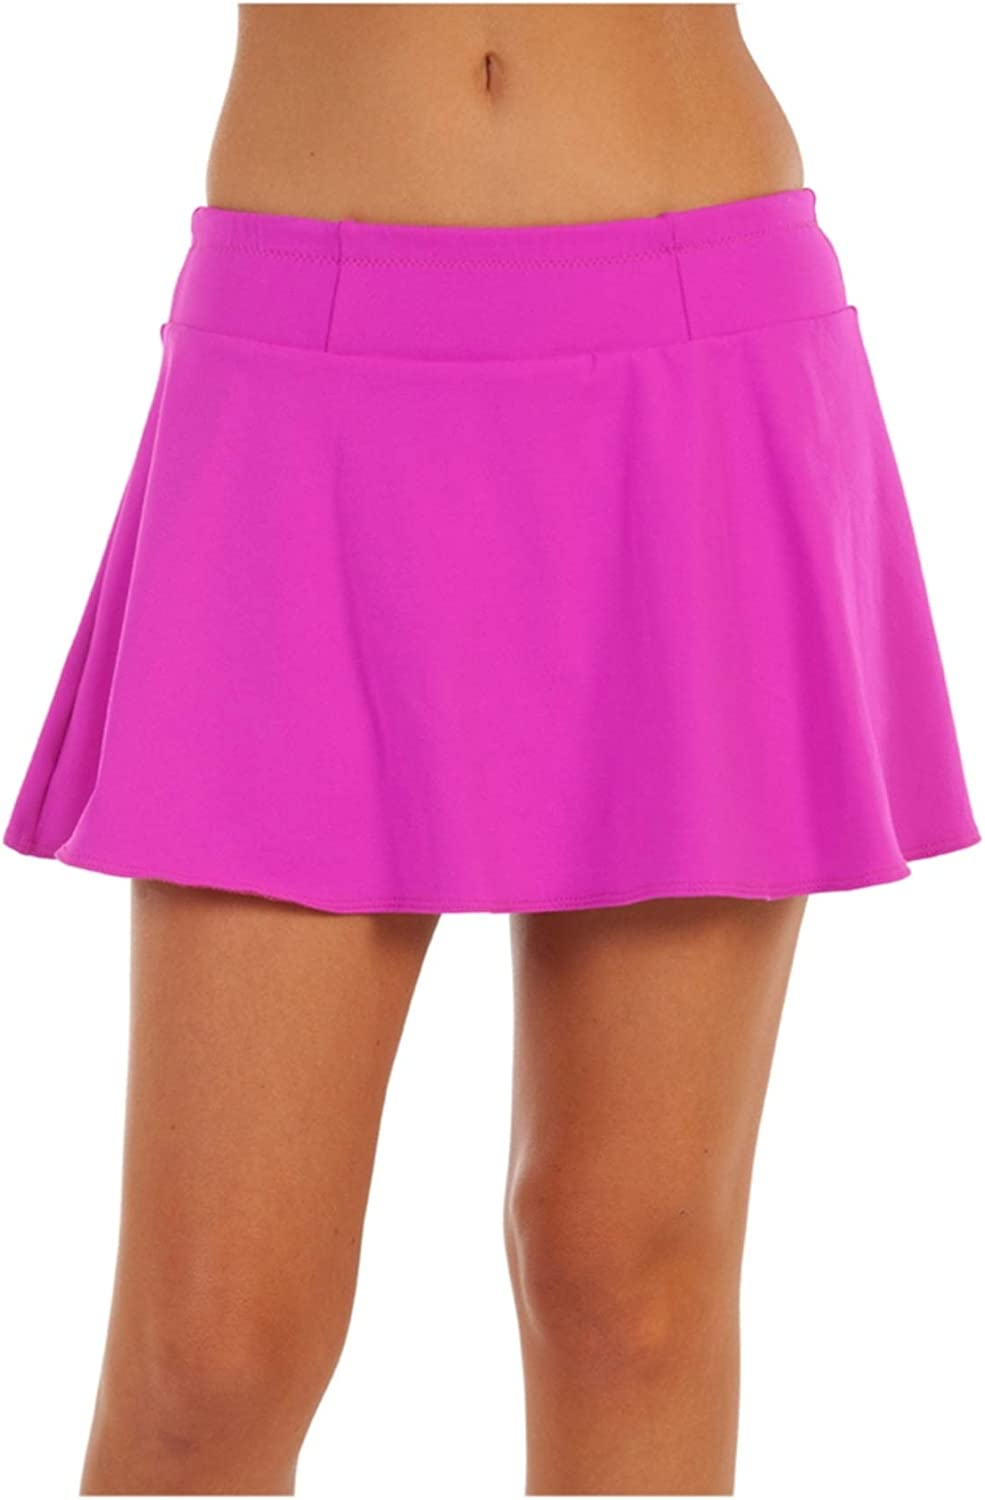 bluee Sky Swimwear Tournament Collection Smash Sport Tennis Skirt in Fuchsia (Size XS) Pink